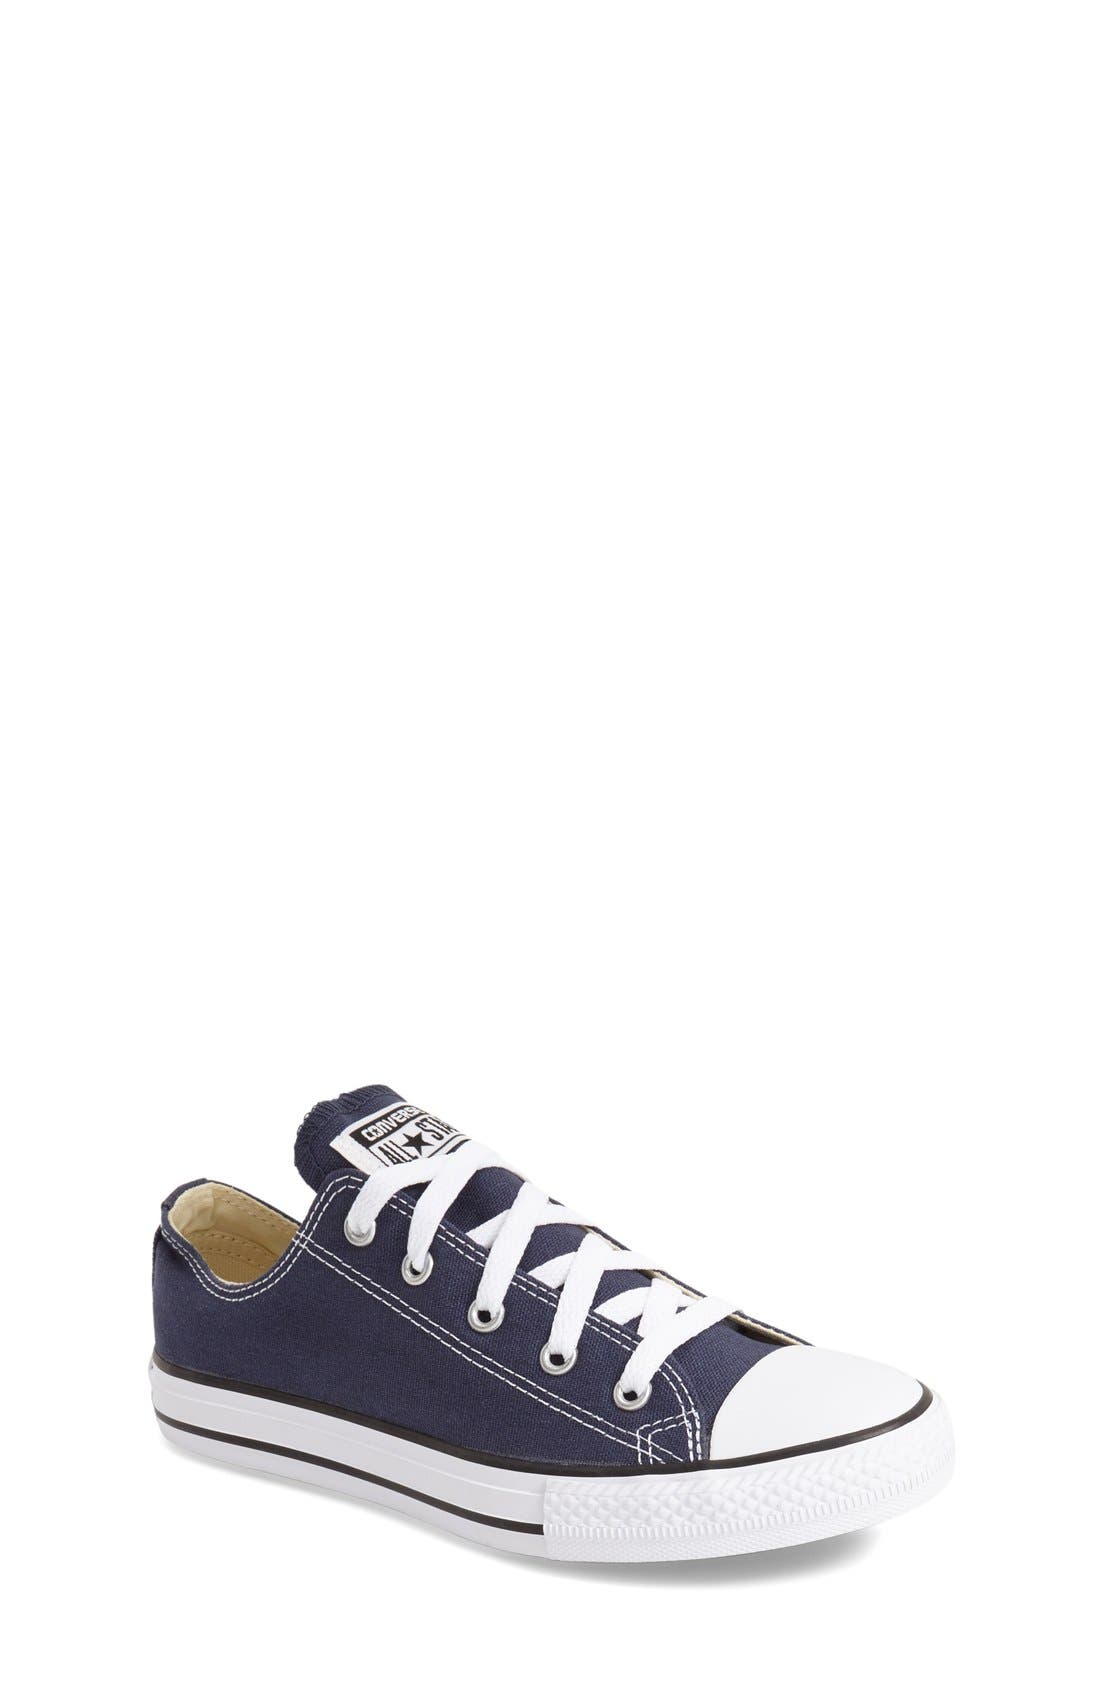 Main Image - Converse Chuck Taylor® Sneaker (Toddler, Little Kid & Big Kid)